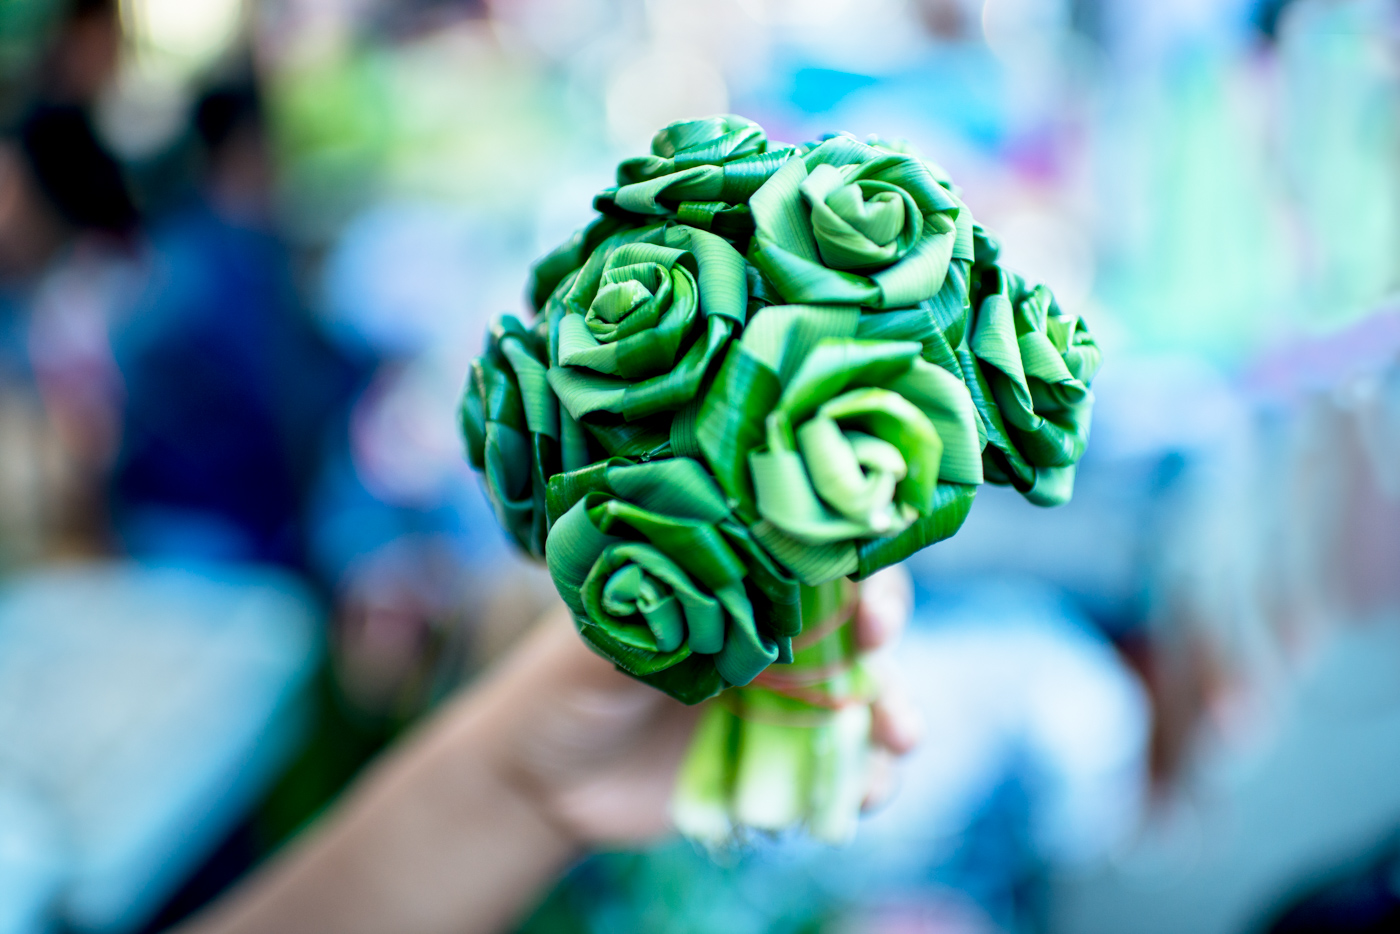 A close up of a person holding a green bouquet - photoshoot themes